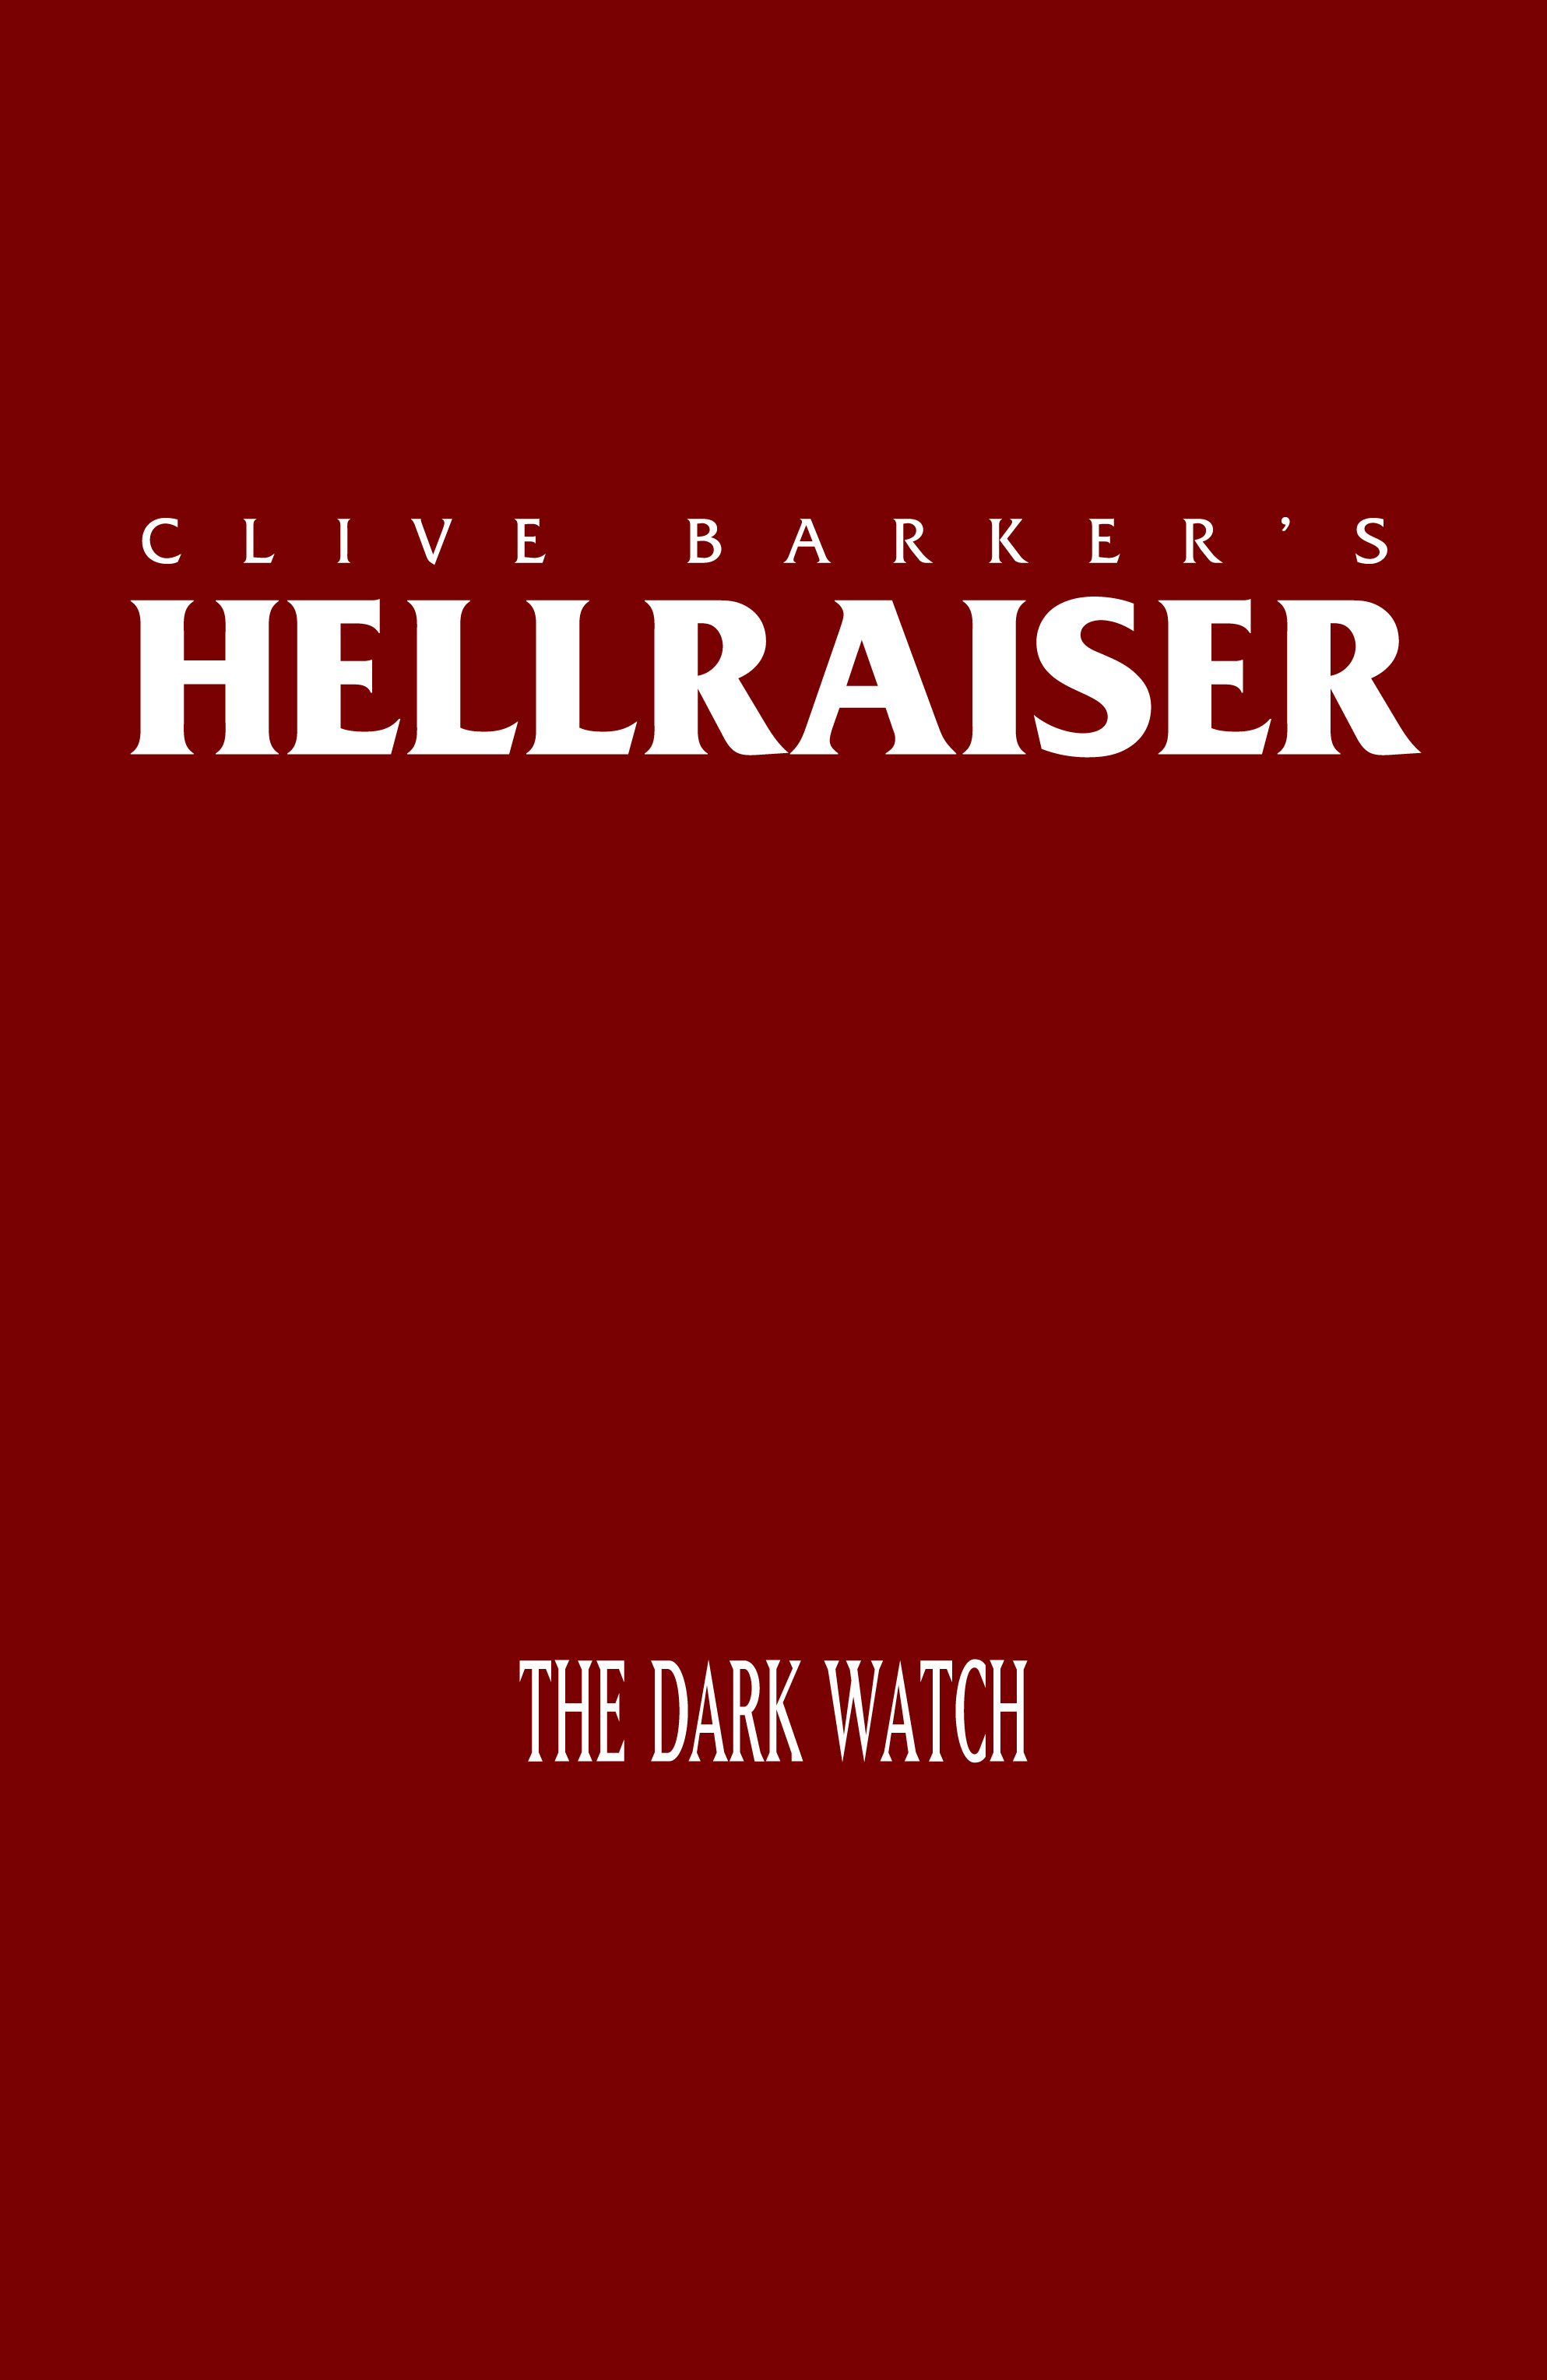 Read online Clive Barker's Hellraiser: The Dark Watch comic -  Issue # TPB 1 - 3